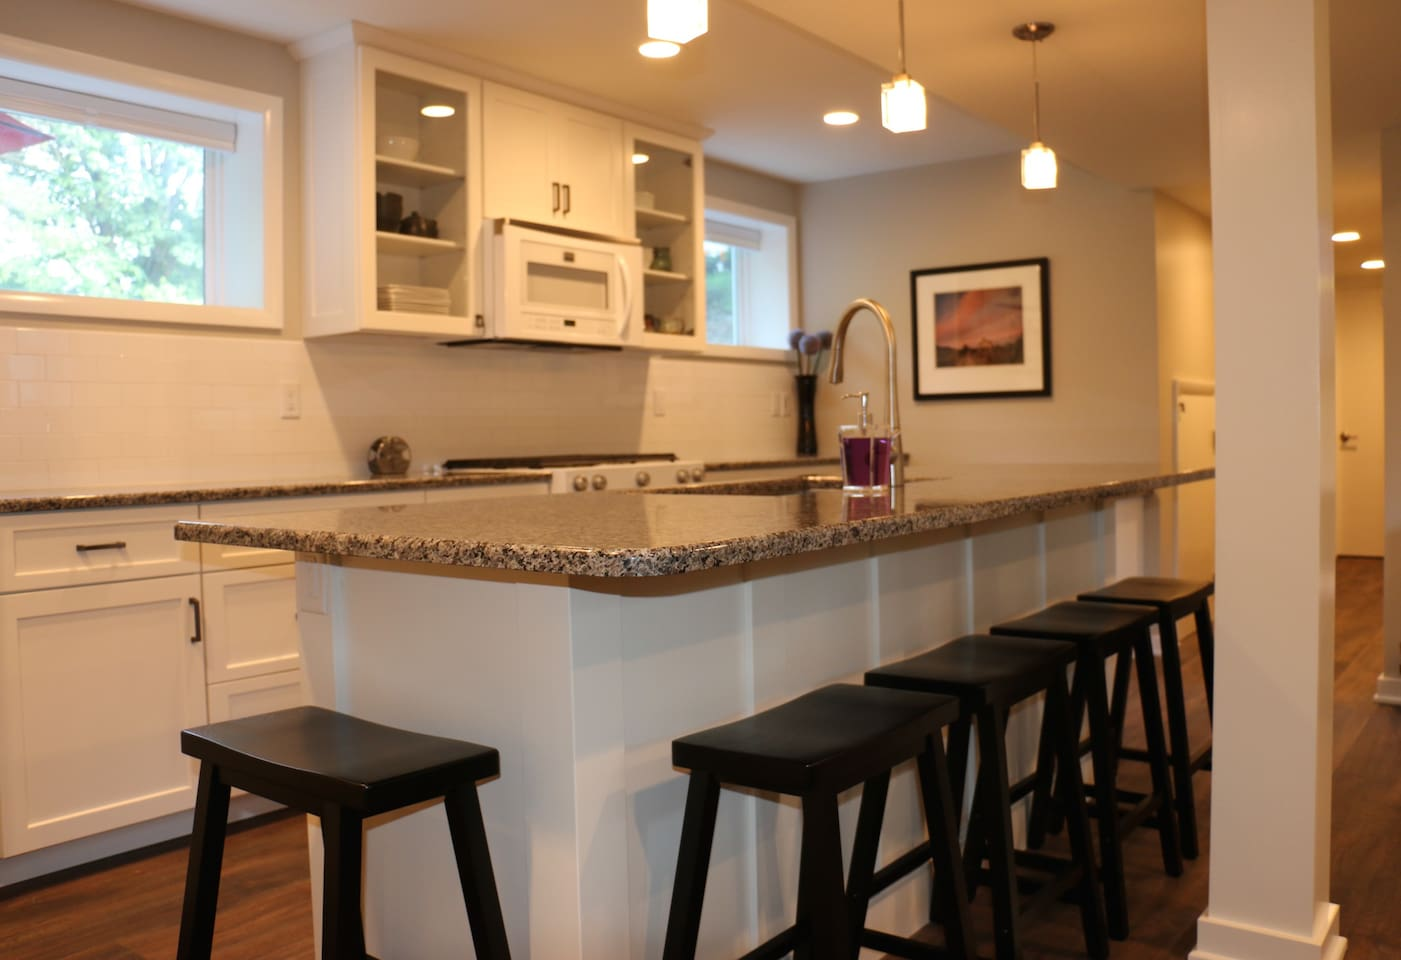 A large granite island serves as the centerpiece for the open kitchen/living room floor plan.